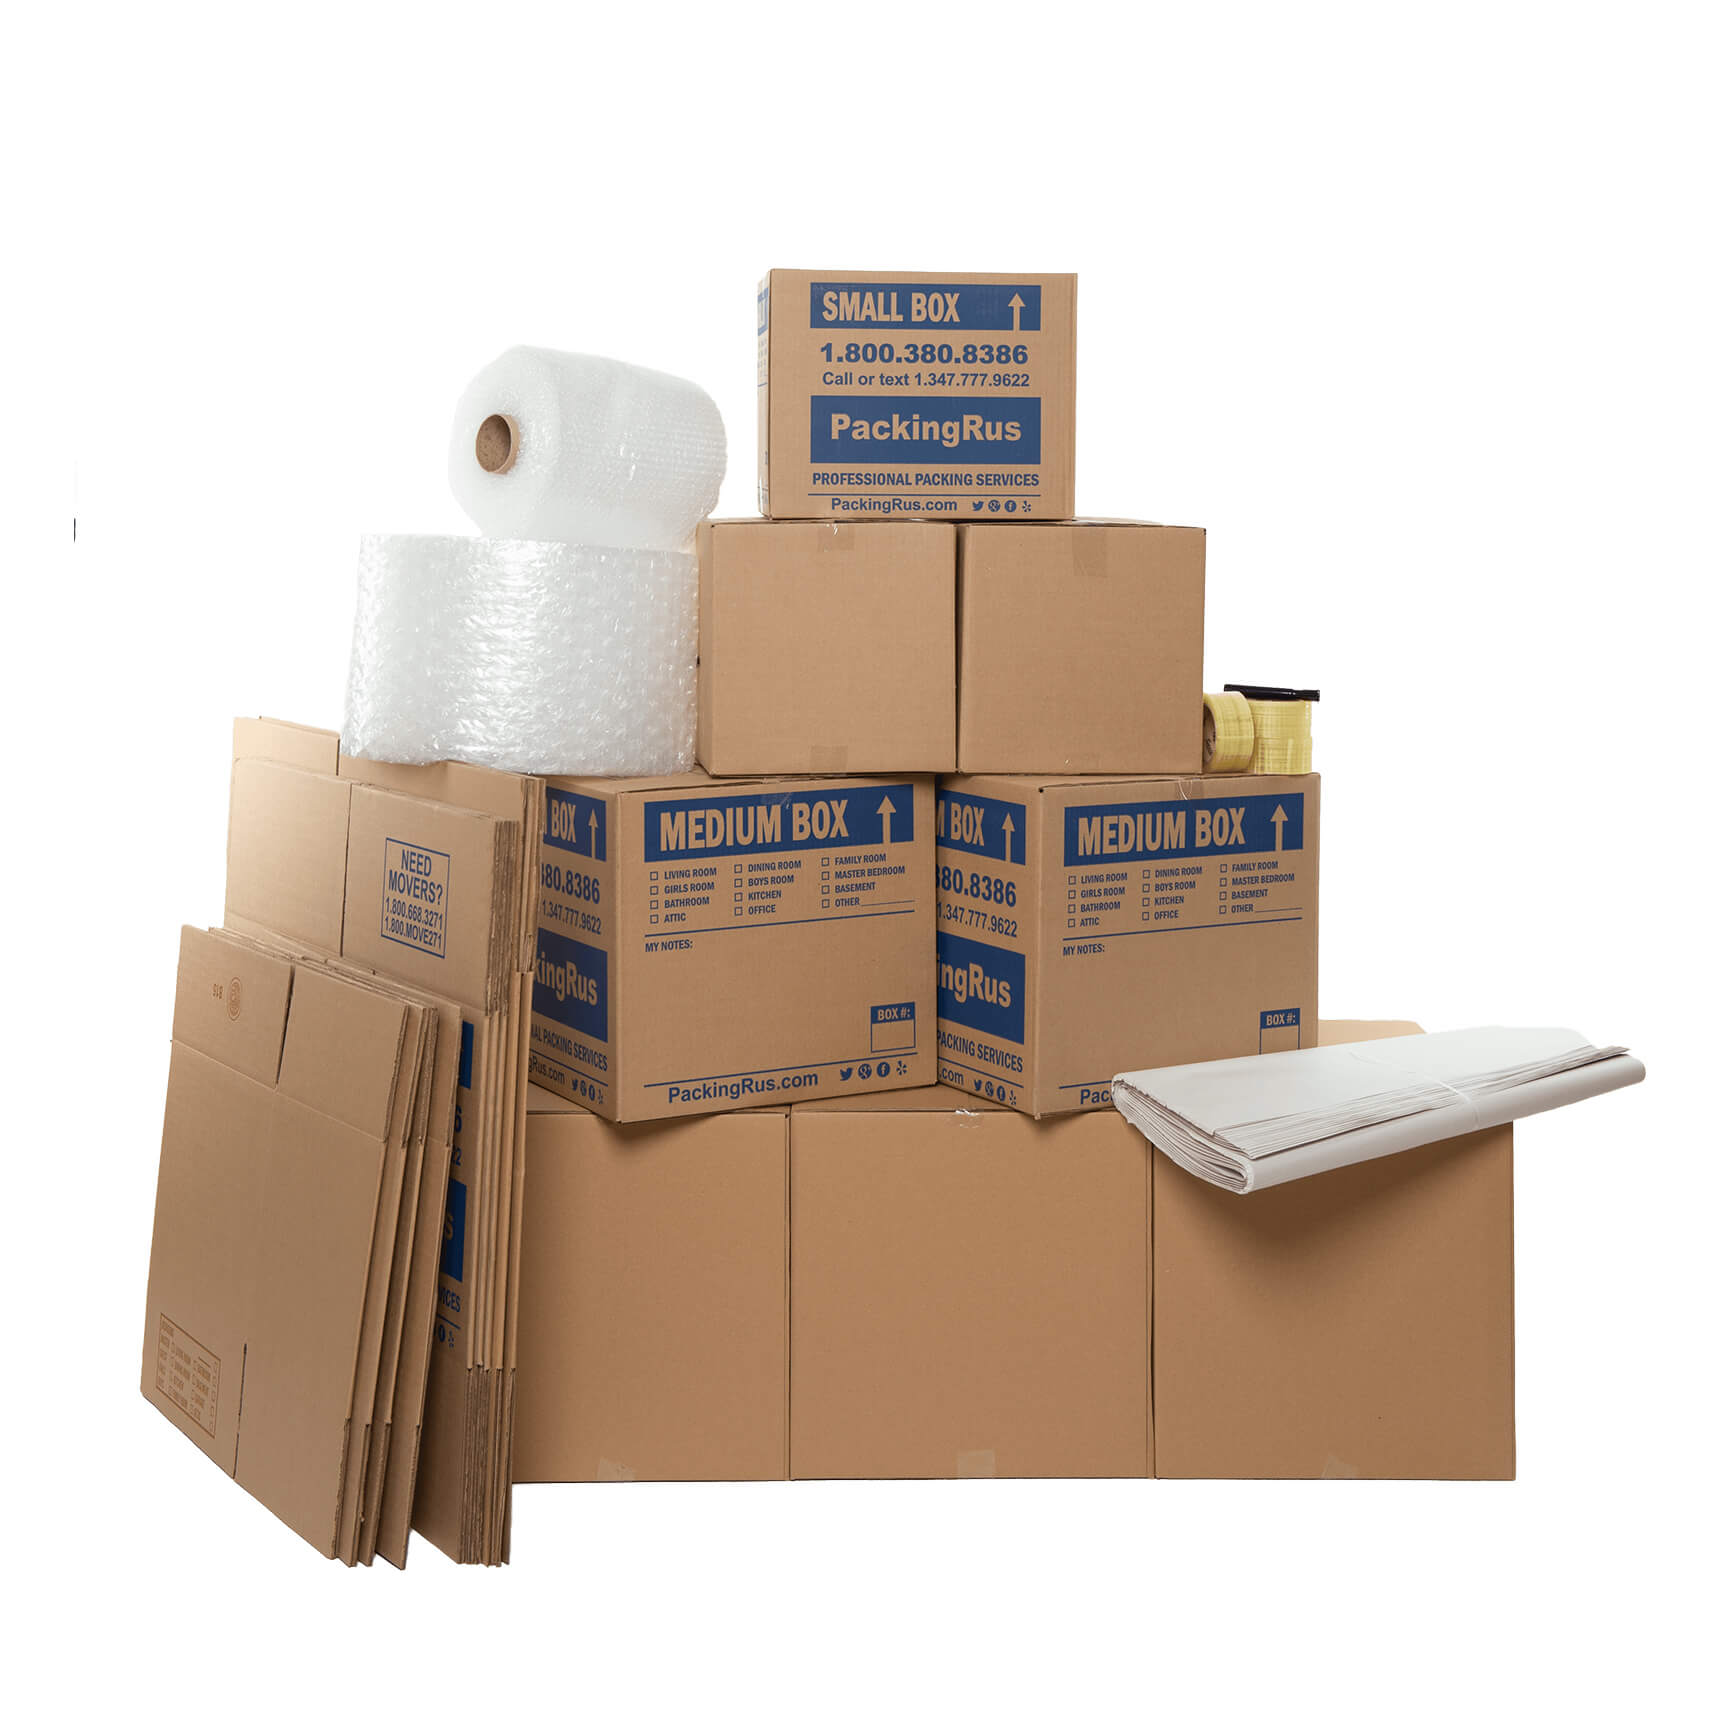 Five Bedroom Moving Kit (Medium) | Kits | Packing R Us | NYC